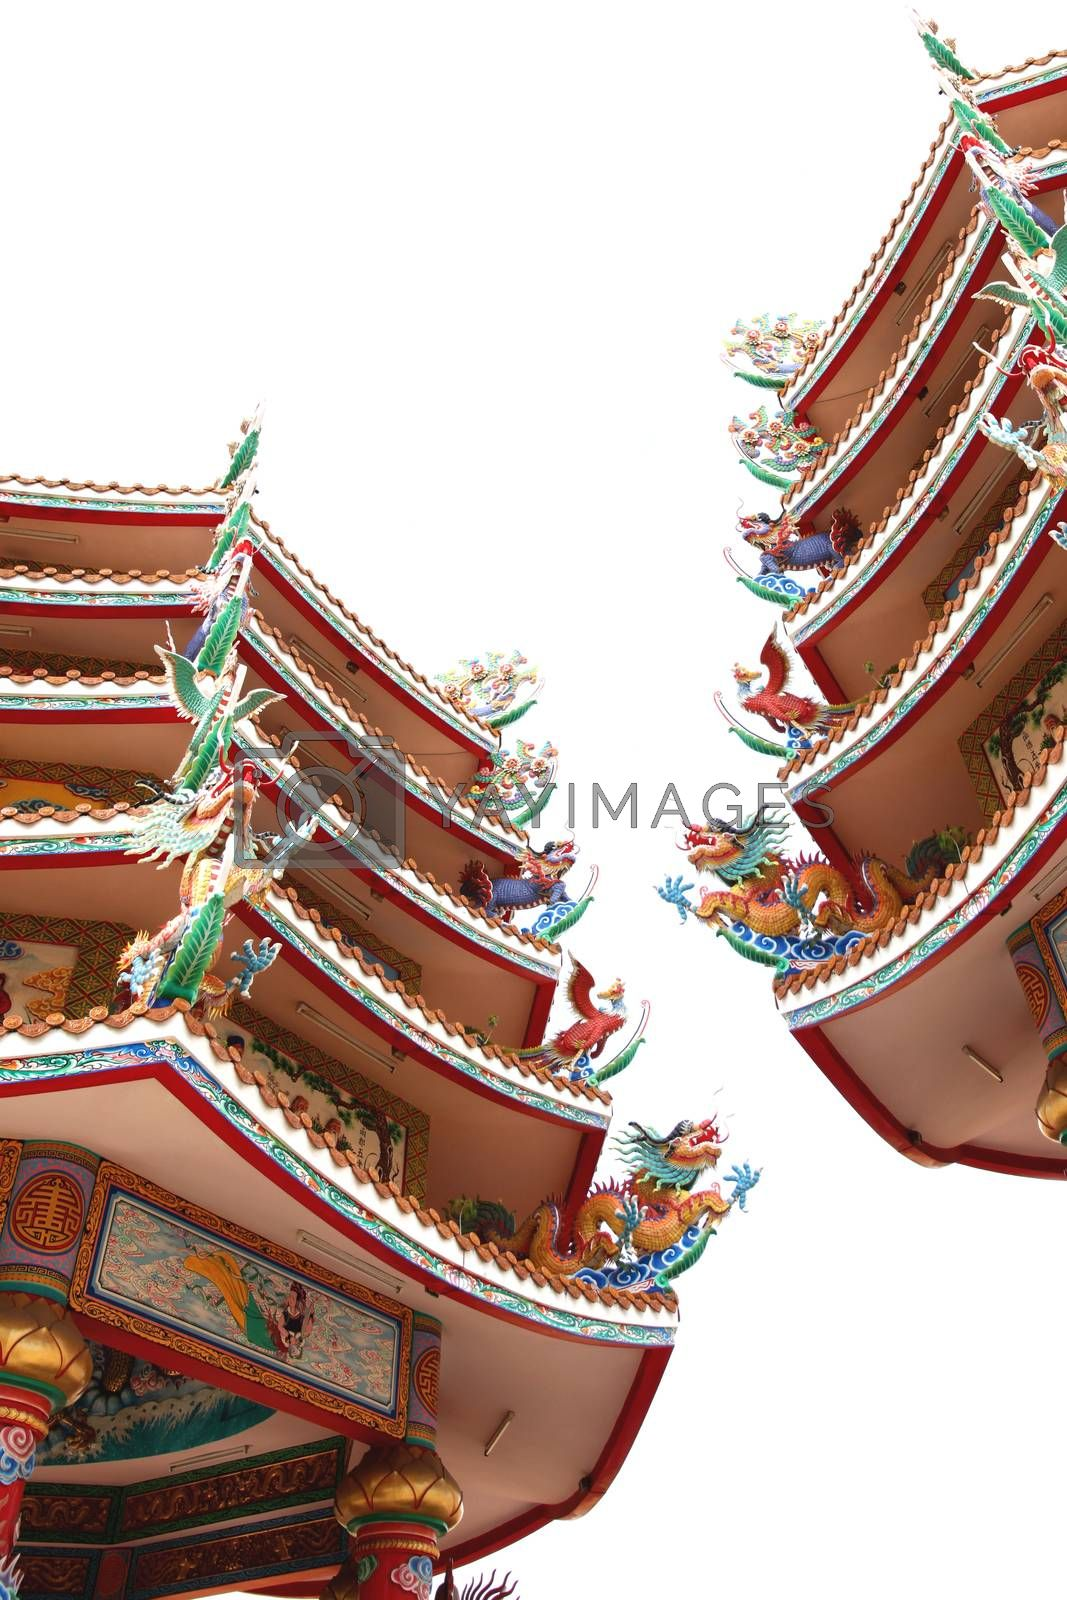 Sculpture in the Chinese Temple. by PiyaPhoto